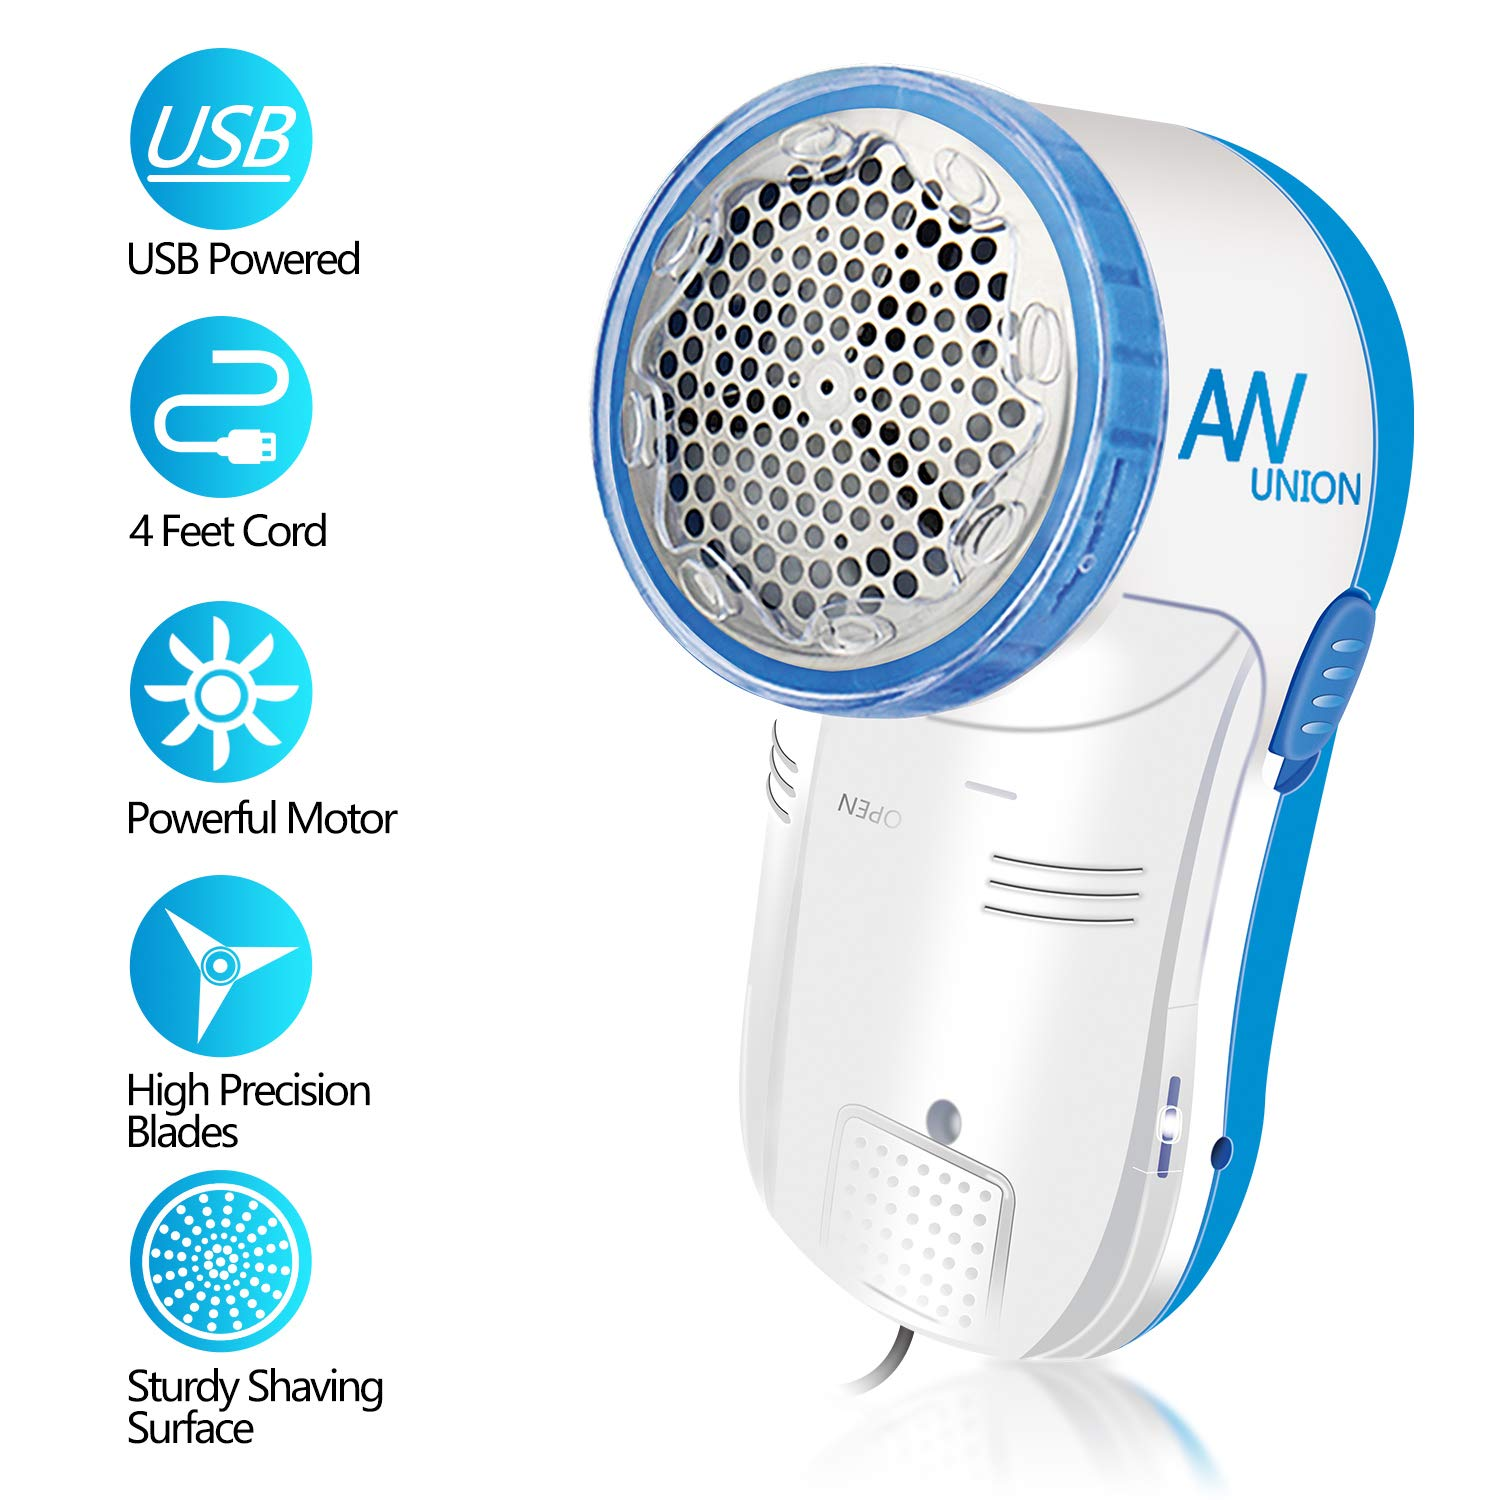 AW Union Fabric Shaver Lint Remover